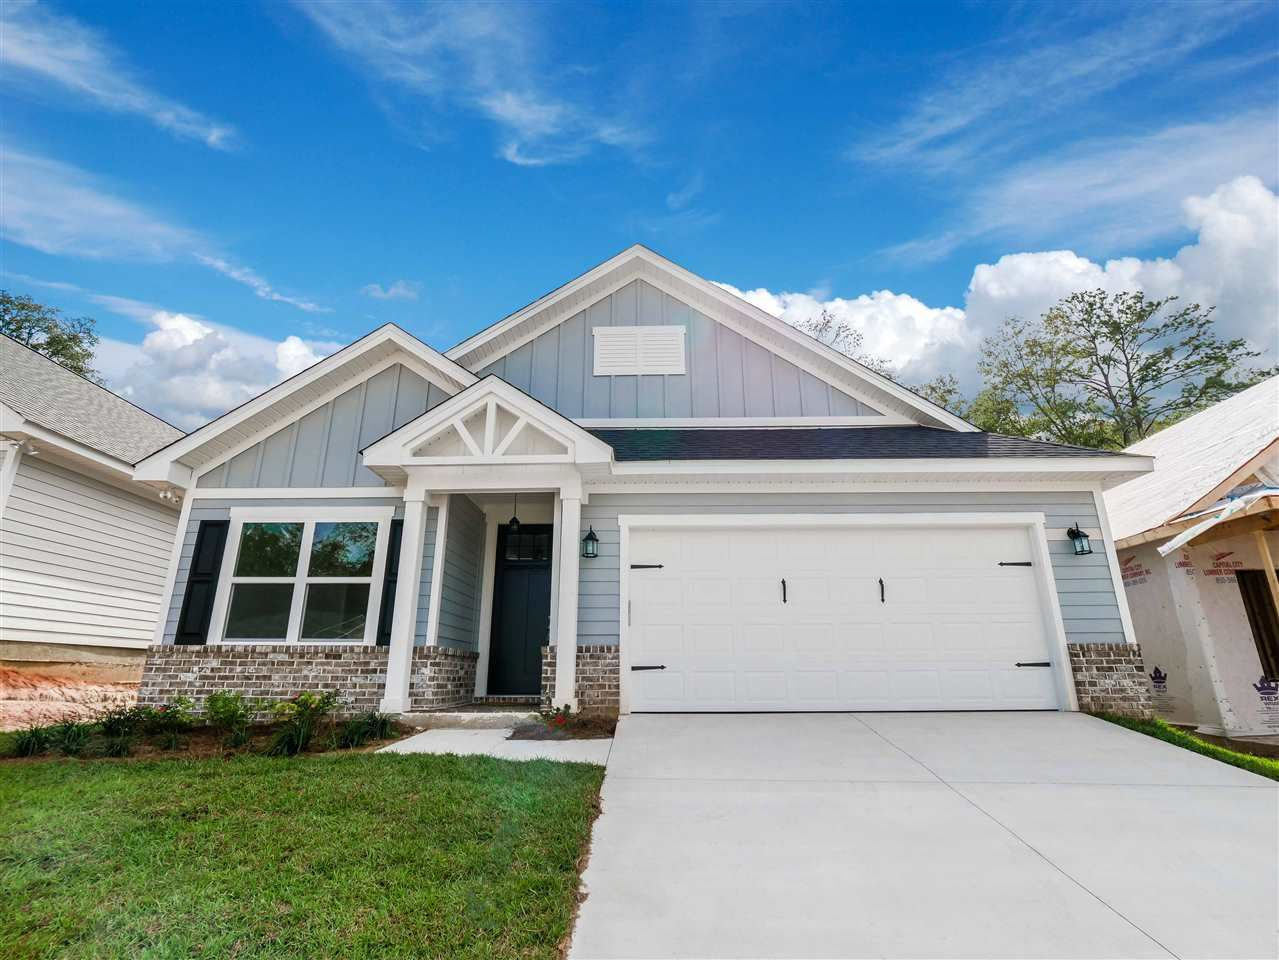 2351 Lexington Pond Way, Tallahassee, FL 32311 - MLS#: 326434